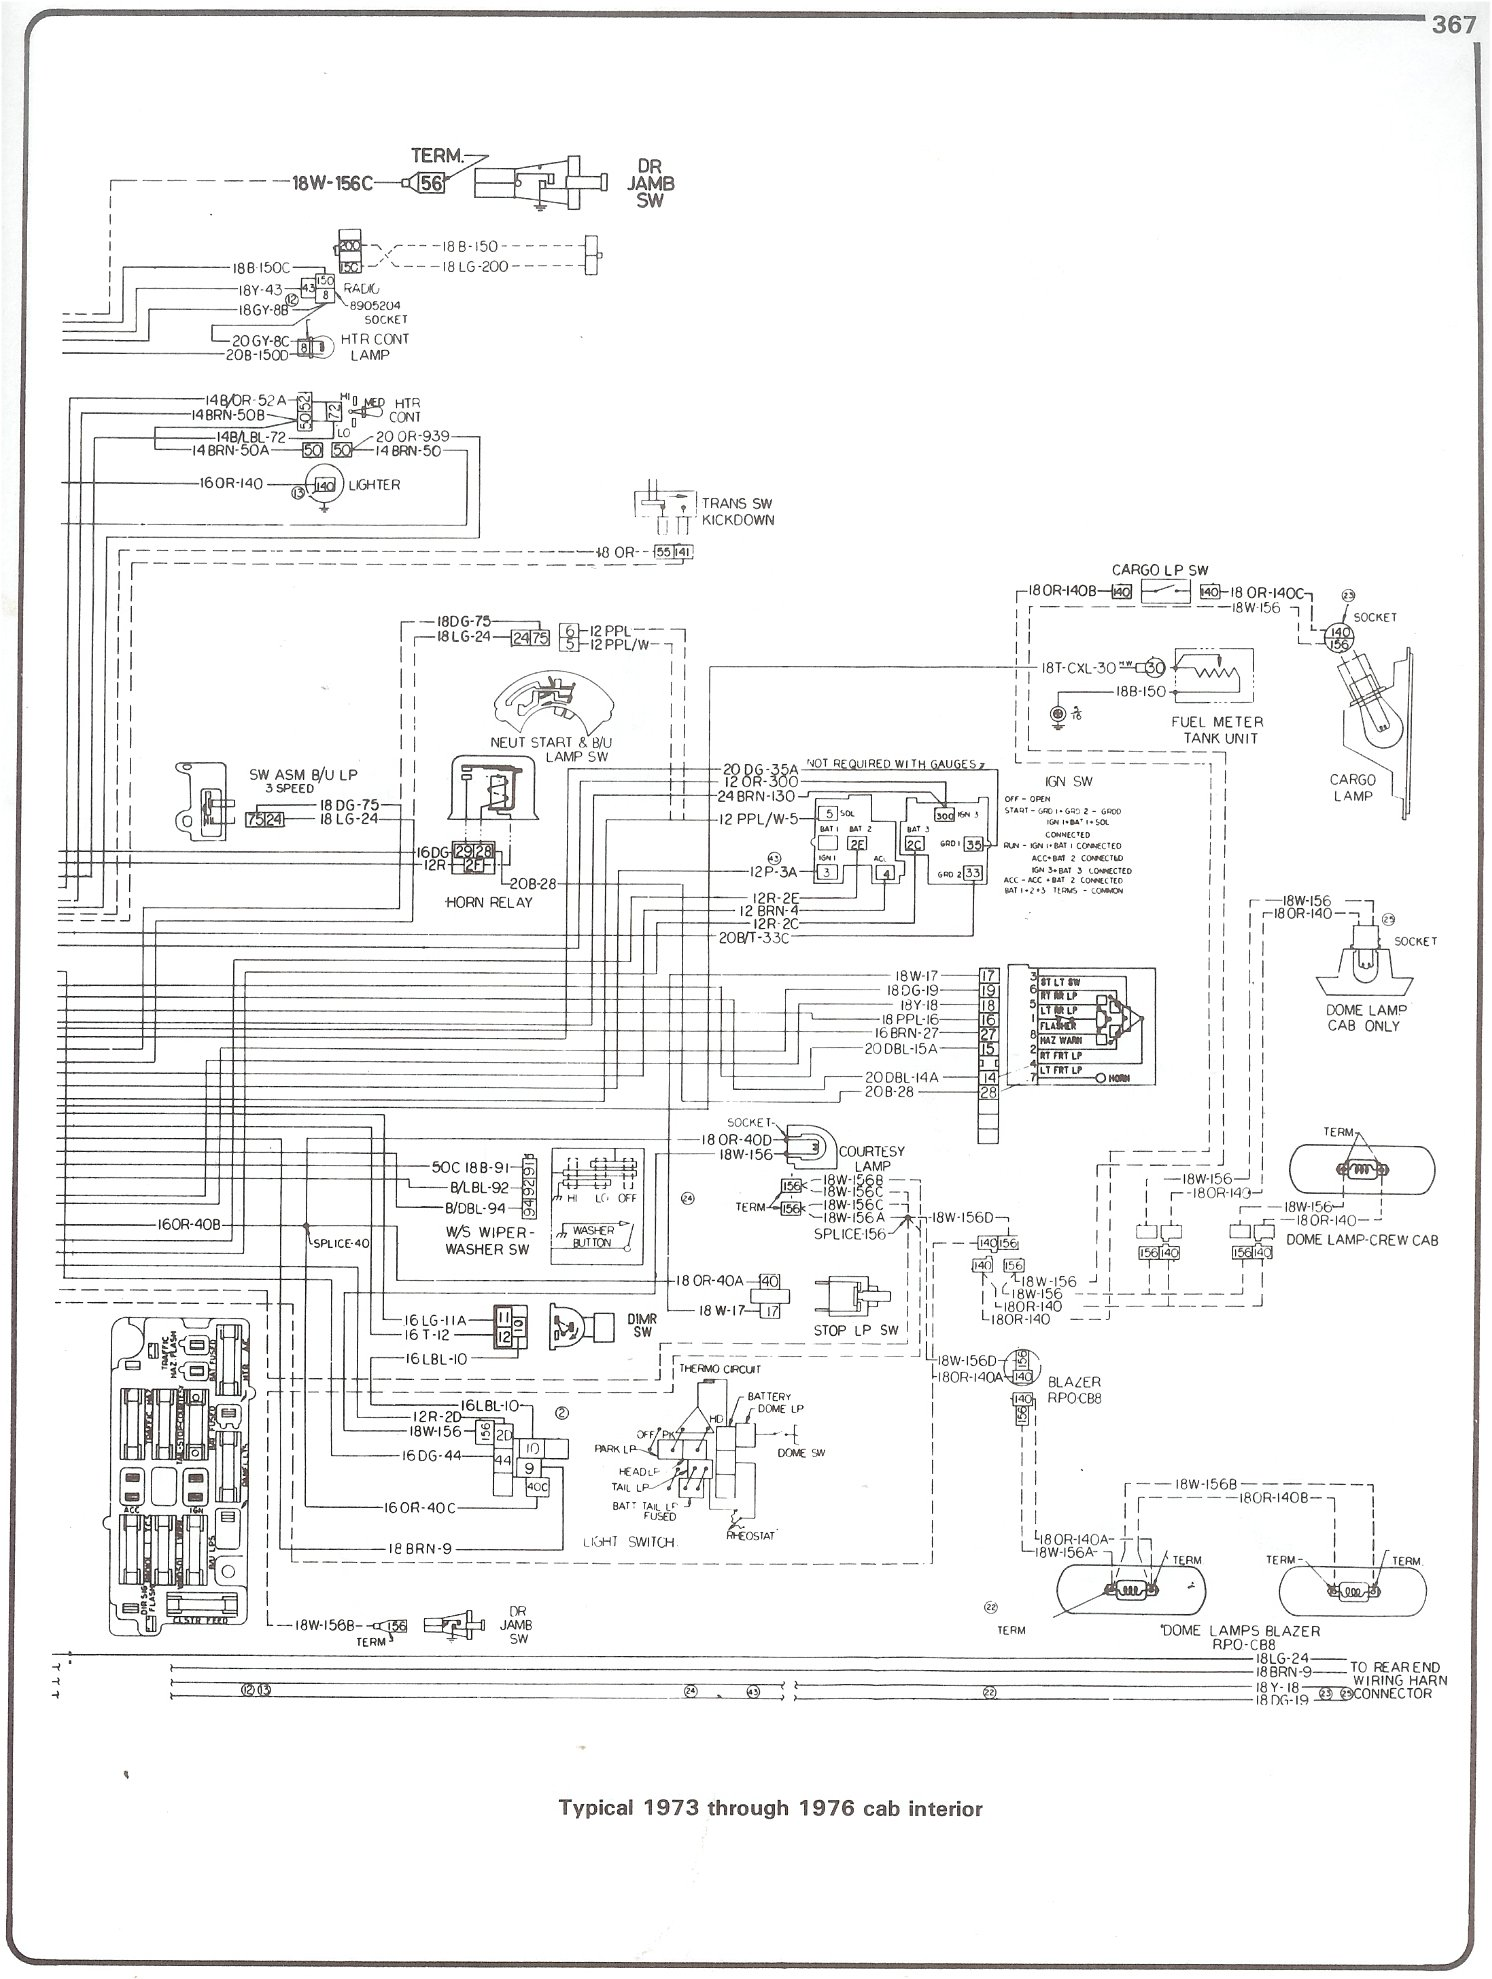 Complete 73-87 Wiring Diagrams on chevy c10 seats, chevy ignition switch wiring diagram, chevy truck wiring diagram, chevy s10 pickup wiring diagram, 67 camaro wiring harness diagram,